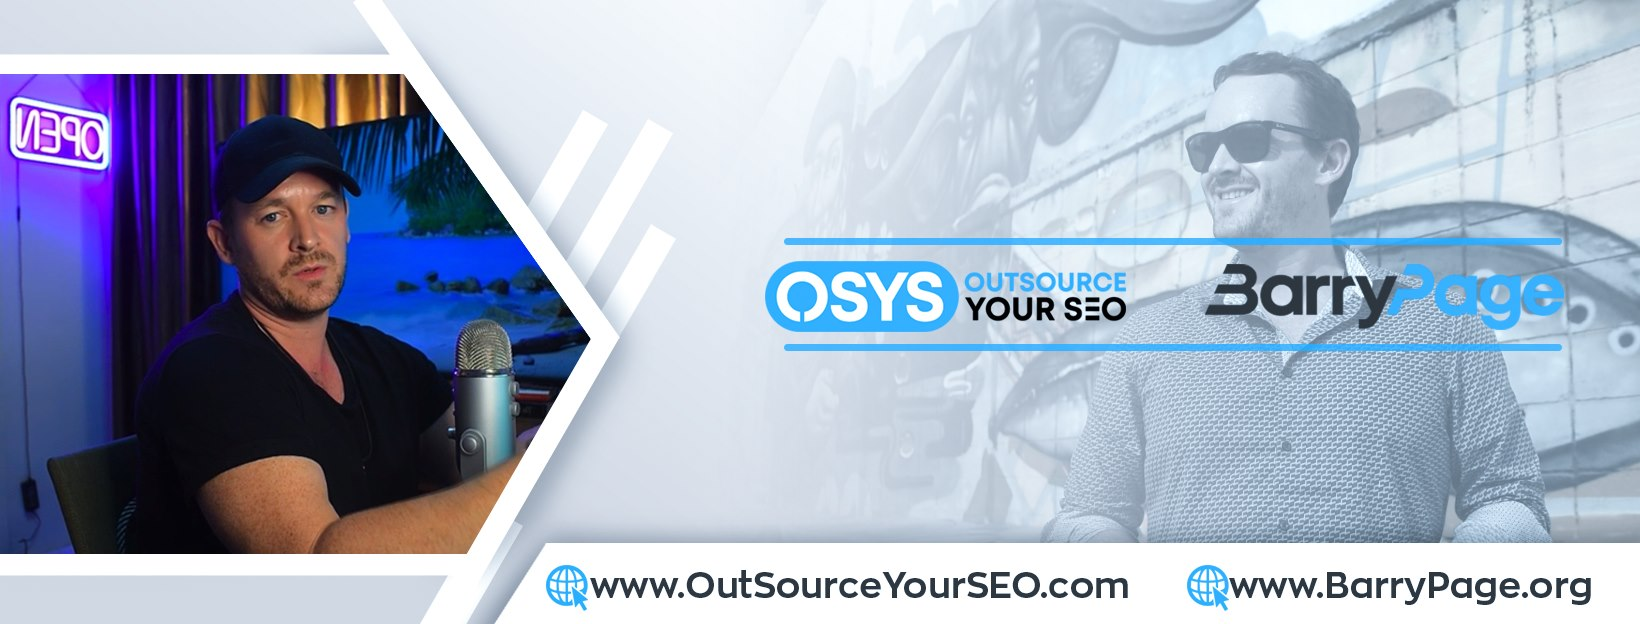 Agency SERPS Accelerator Guaranteed Results SEO for Agency Resellers and Solo Entrepreneurs.